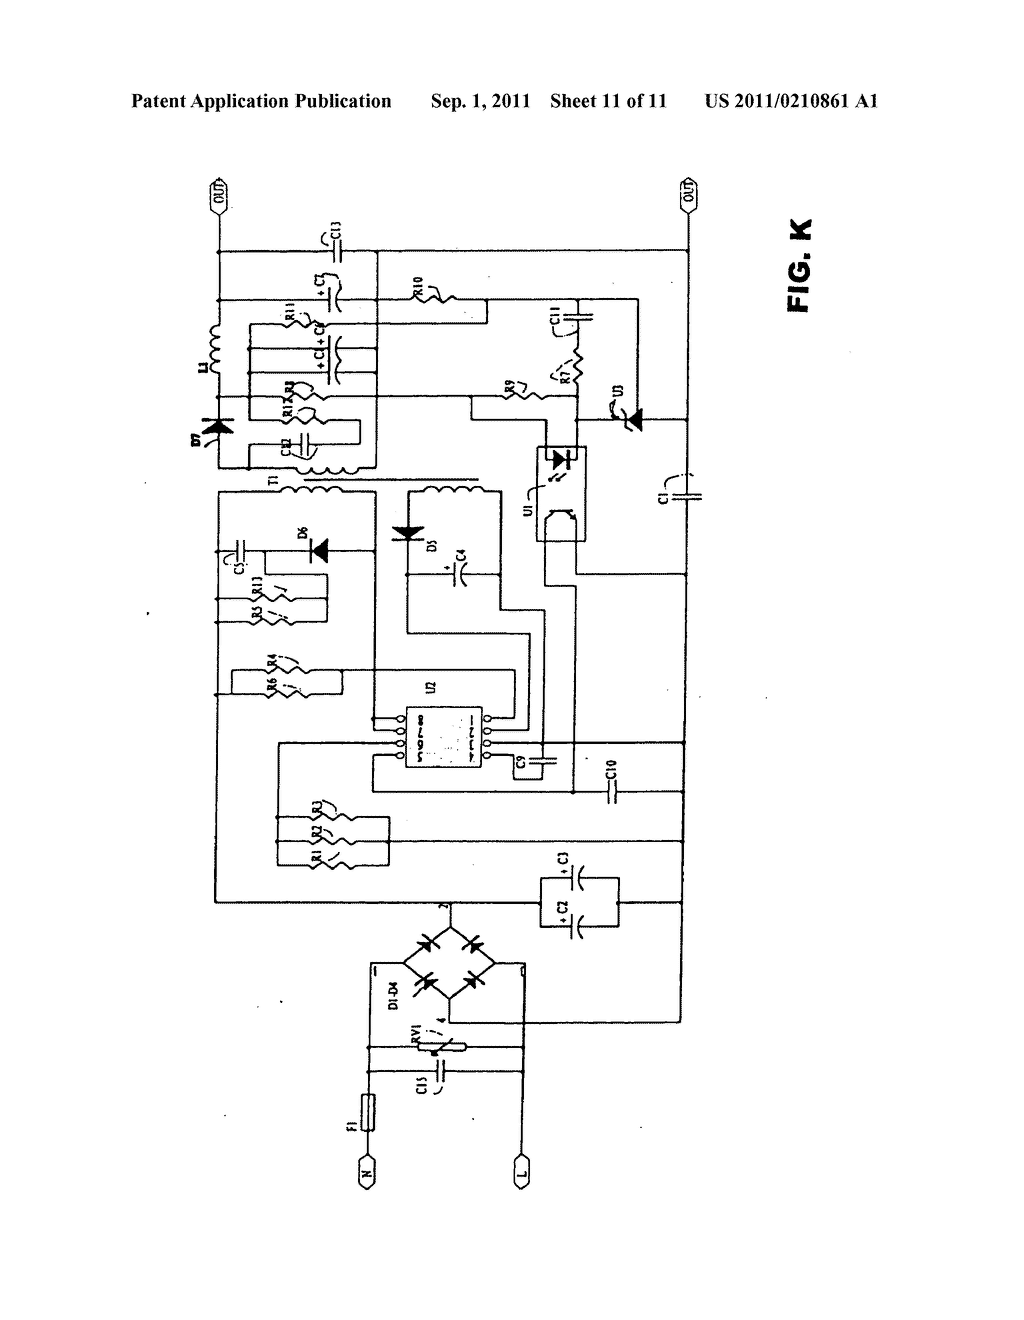 [DIAGRAM] Request To Exit Wiring Diagram FULL Version HD